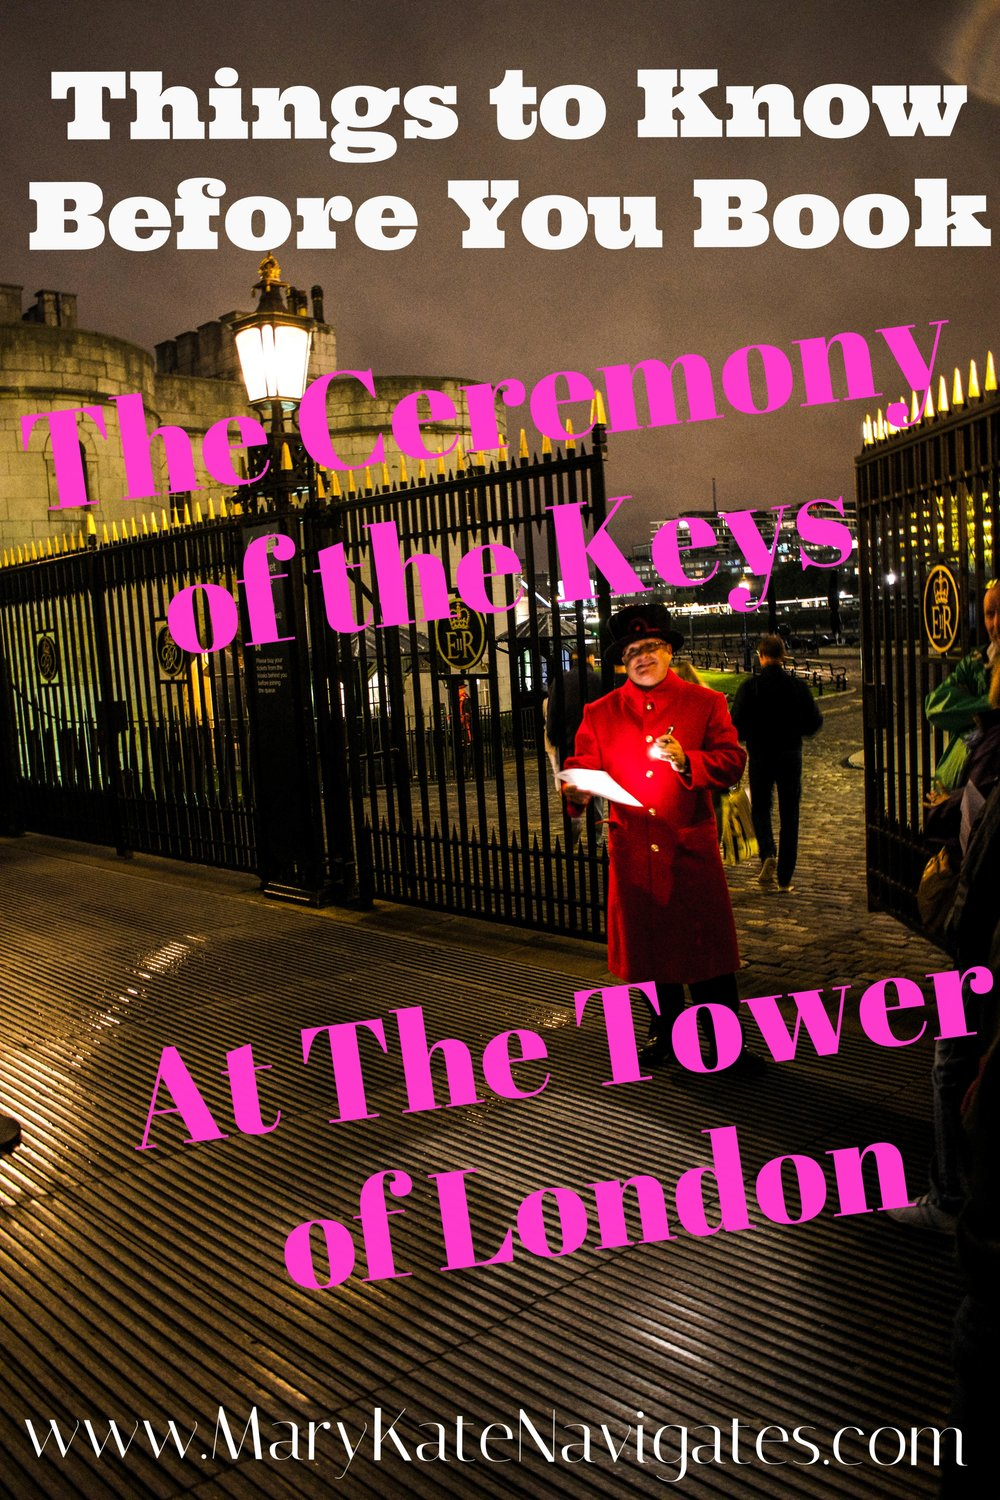 Tower of London ~ Ceremony of the Keys